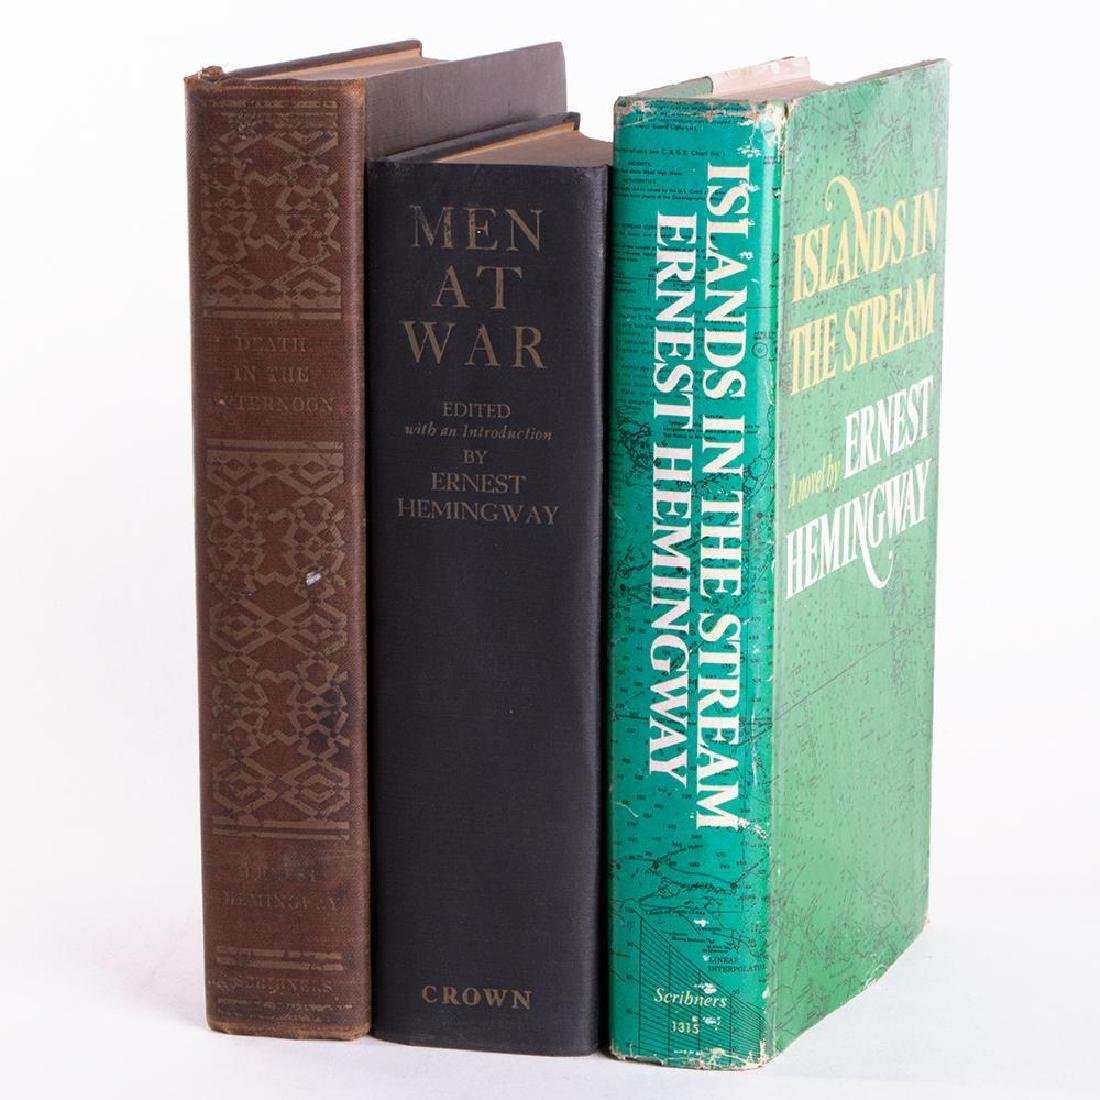 Three first edition works by Ernest Hemingway